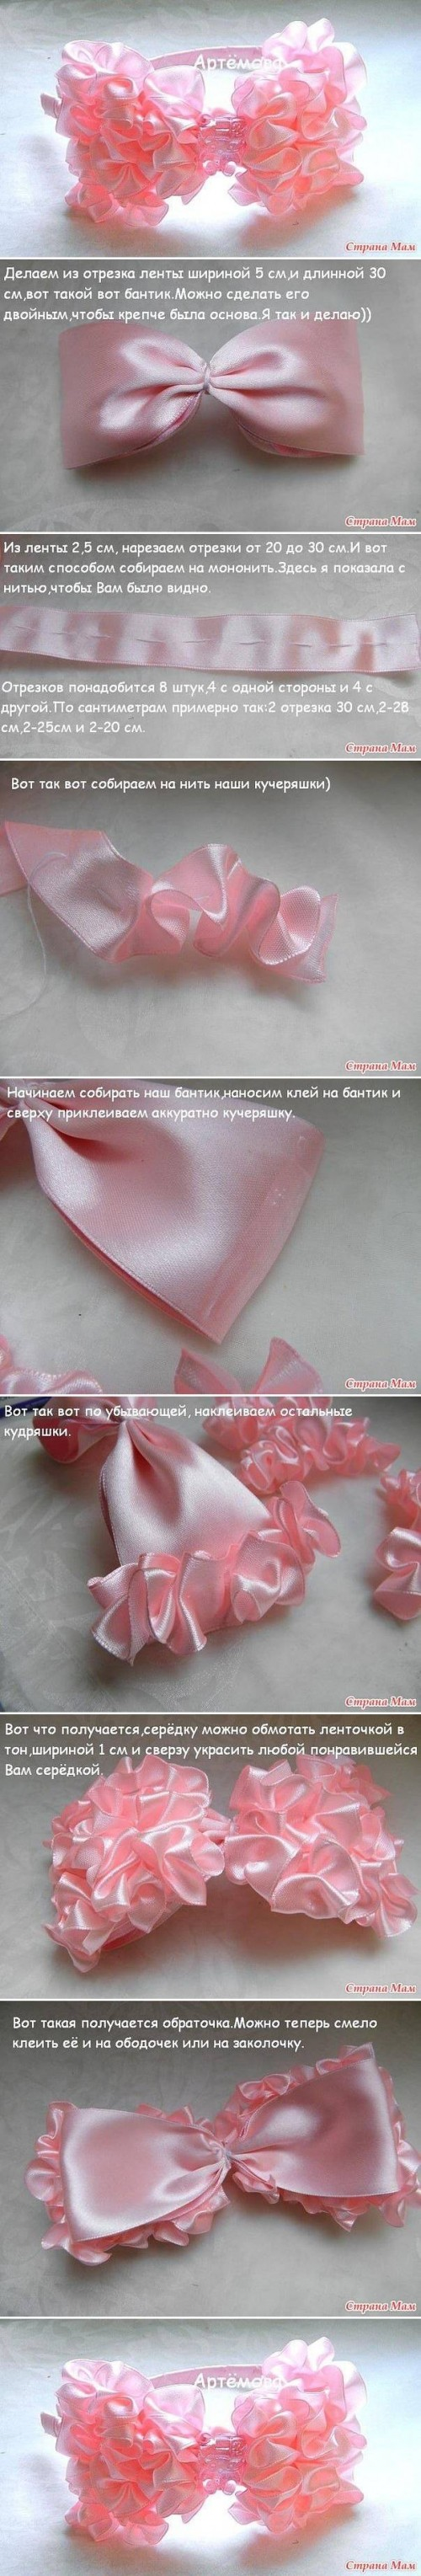 How to make Pretty Pink Bow step by step DIY tutorial instructions